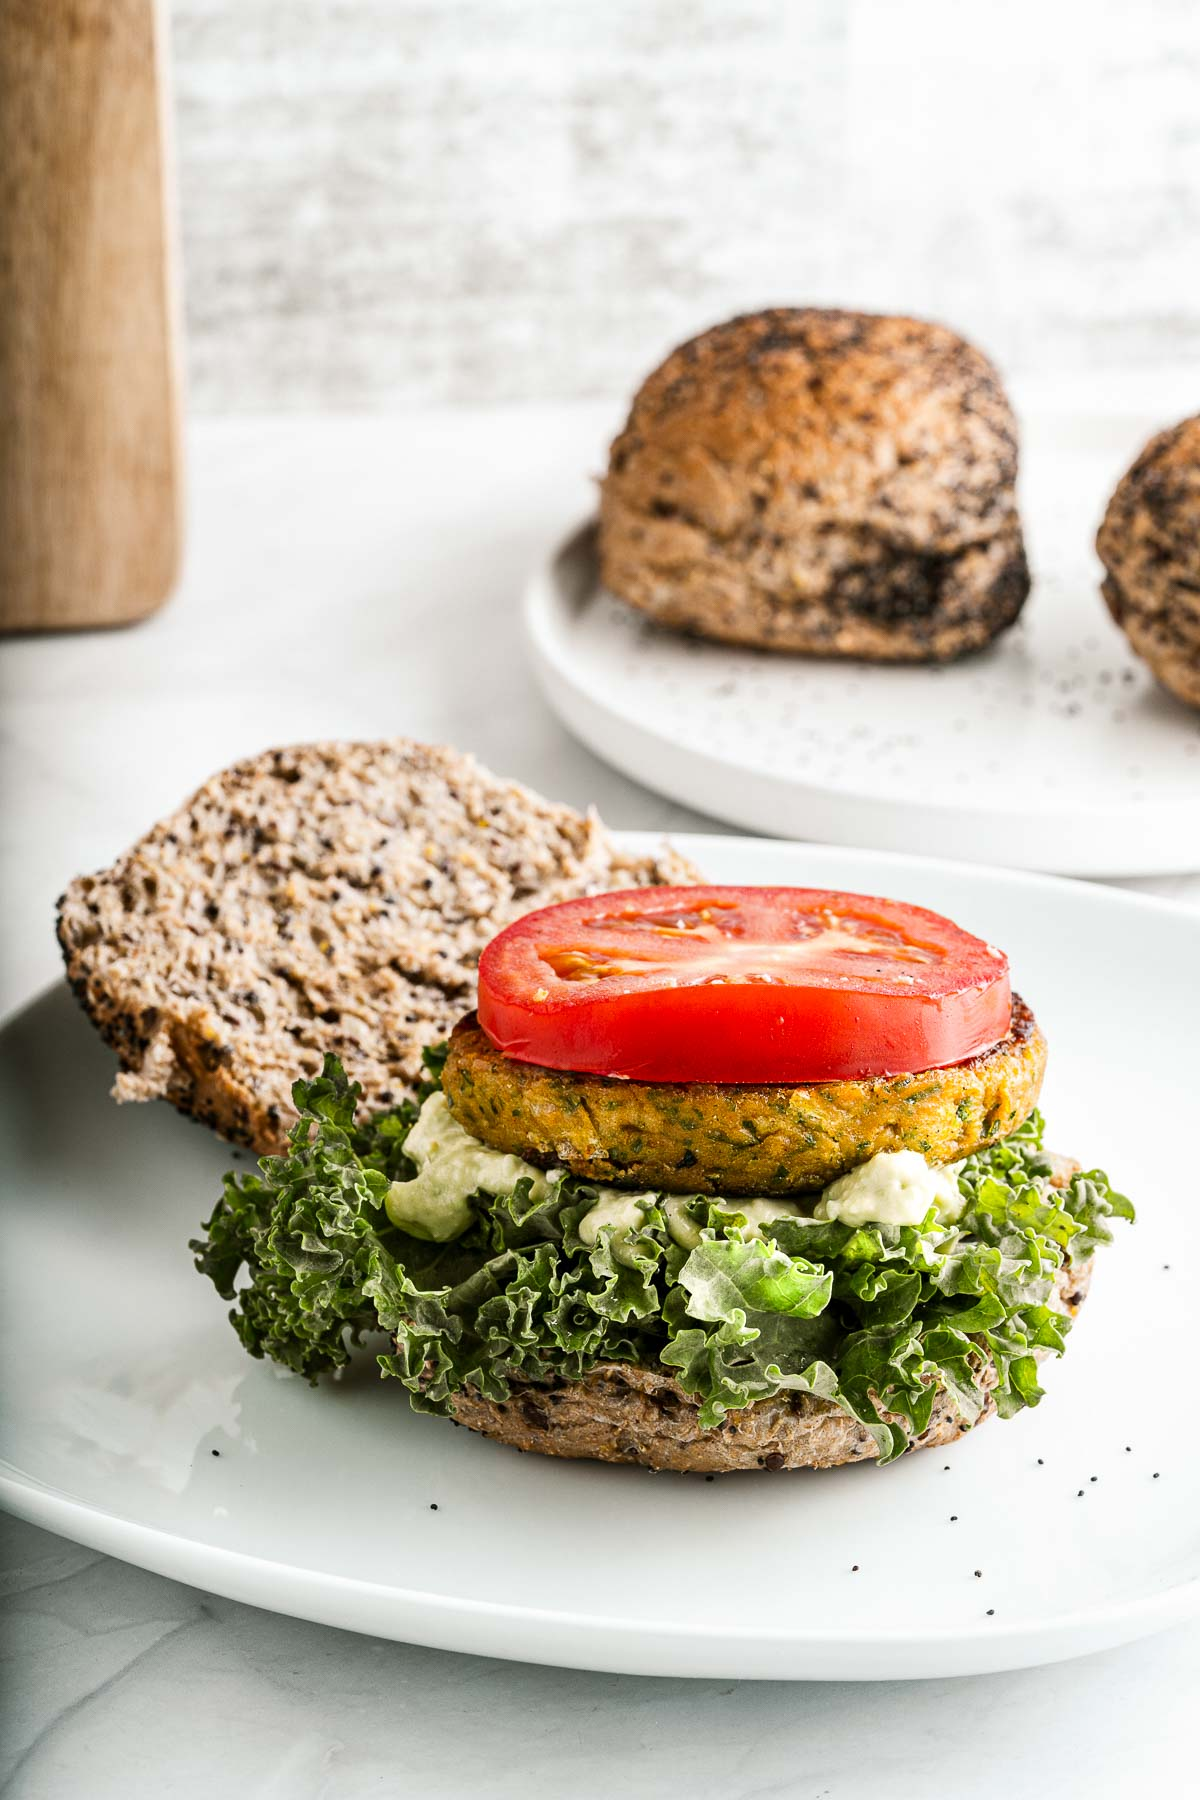 chickpea burgers with toppings